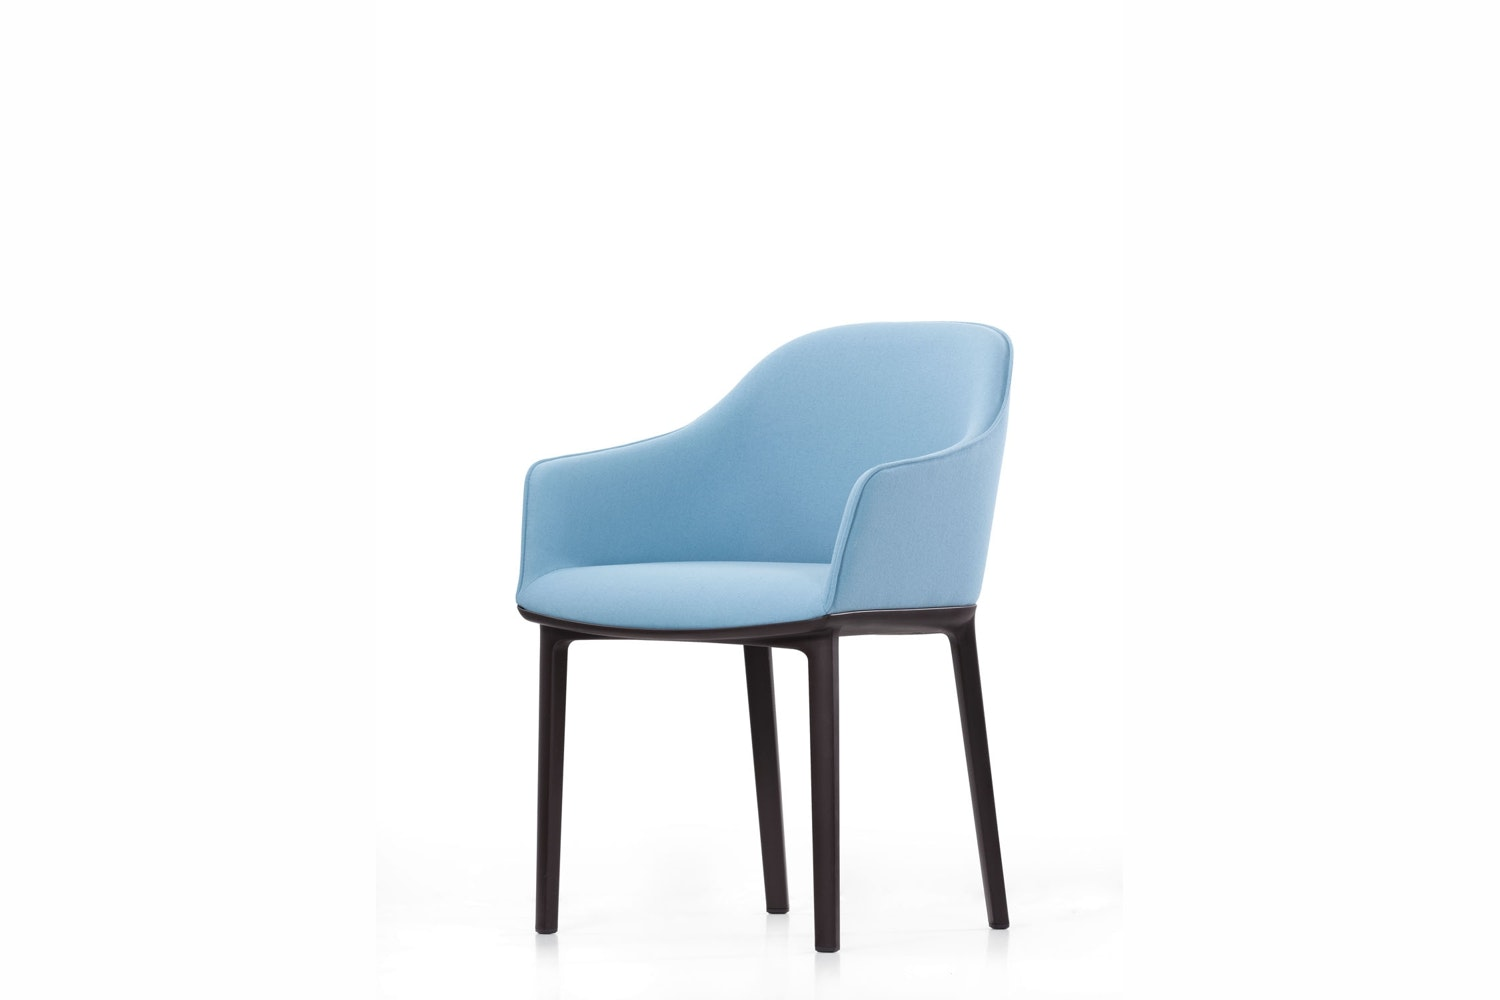 Softshell Chair by Ronan & Erwan Bouroullec for Vitra